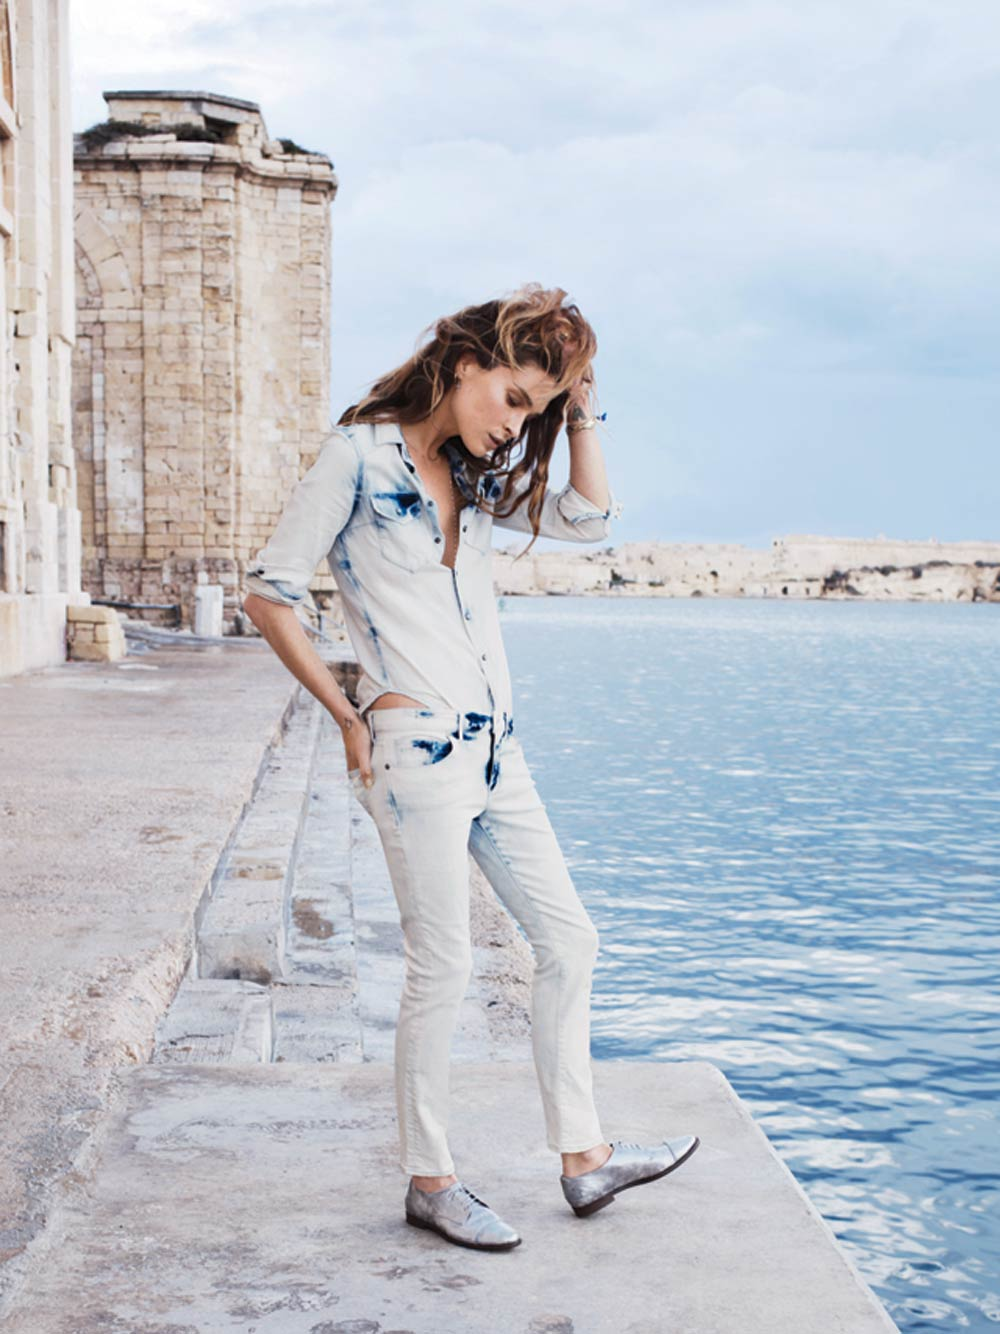 erin wasson fashion model candids off duty style fashion editorial vogue russia free people jeans denim bikini swim